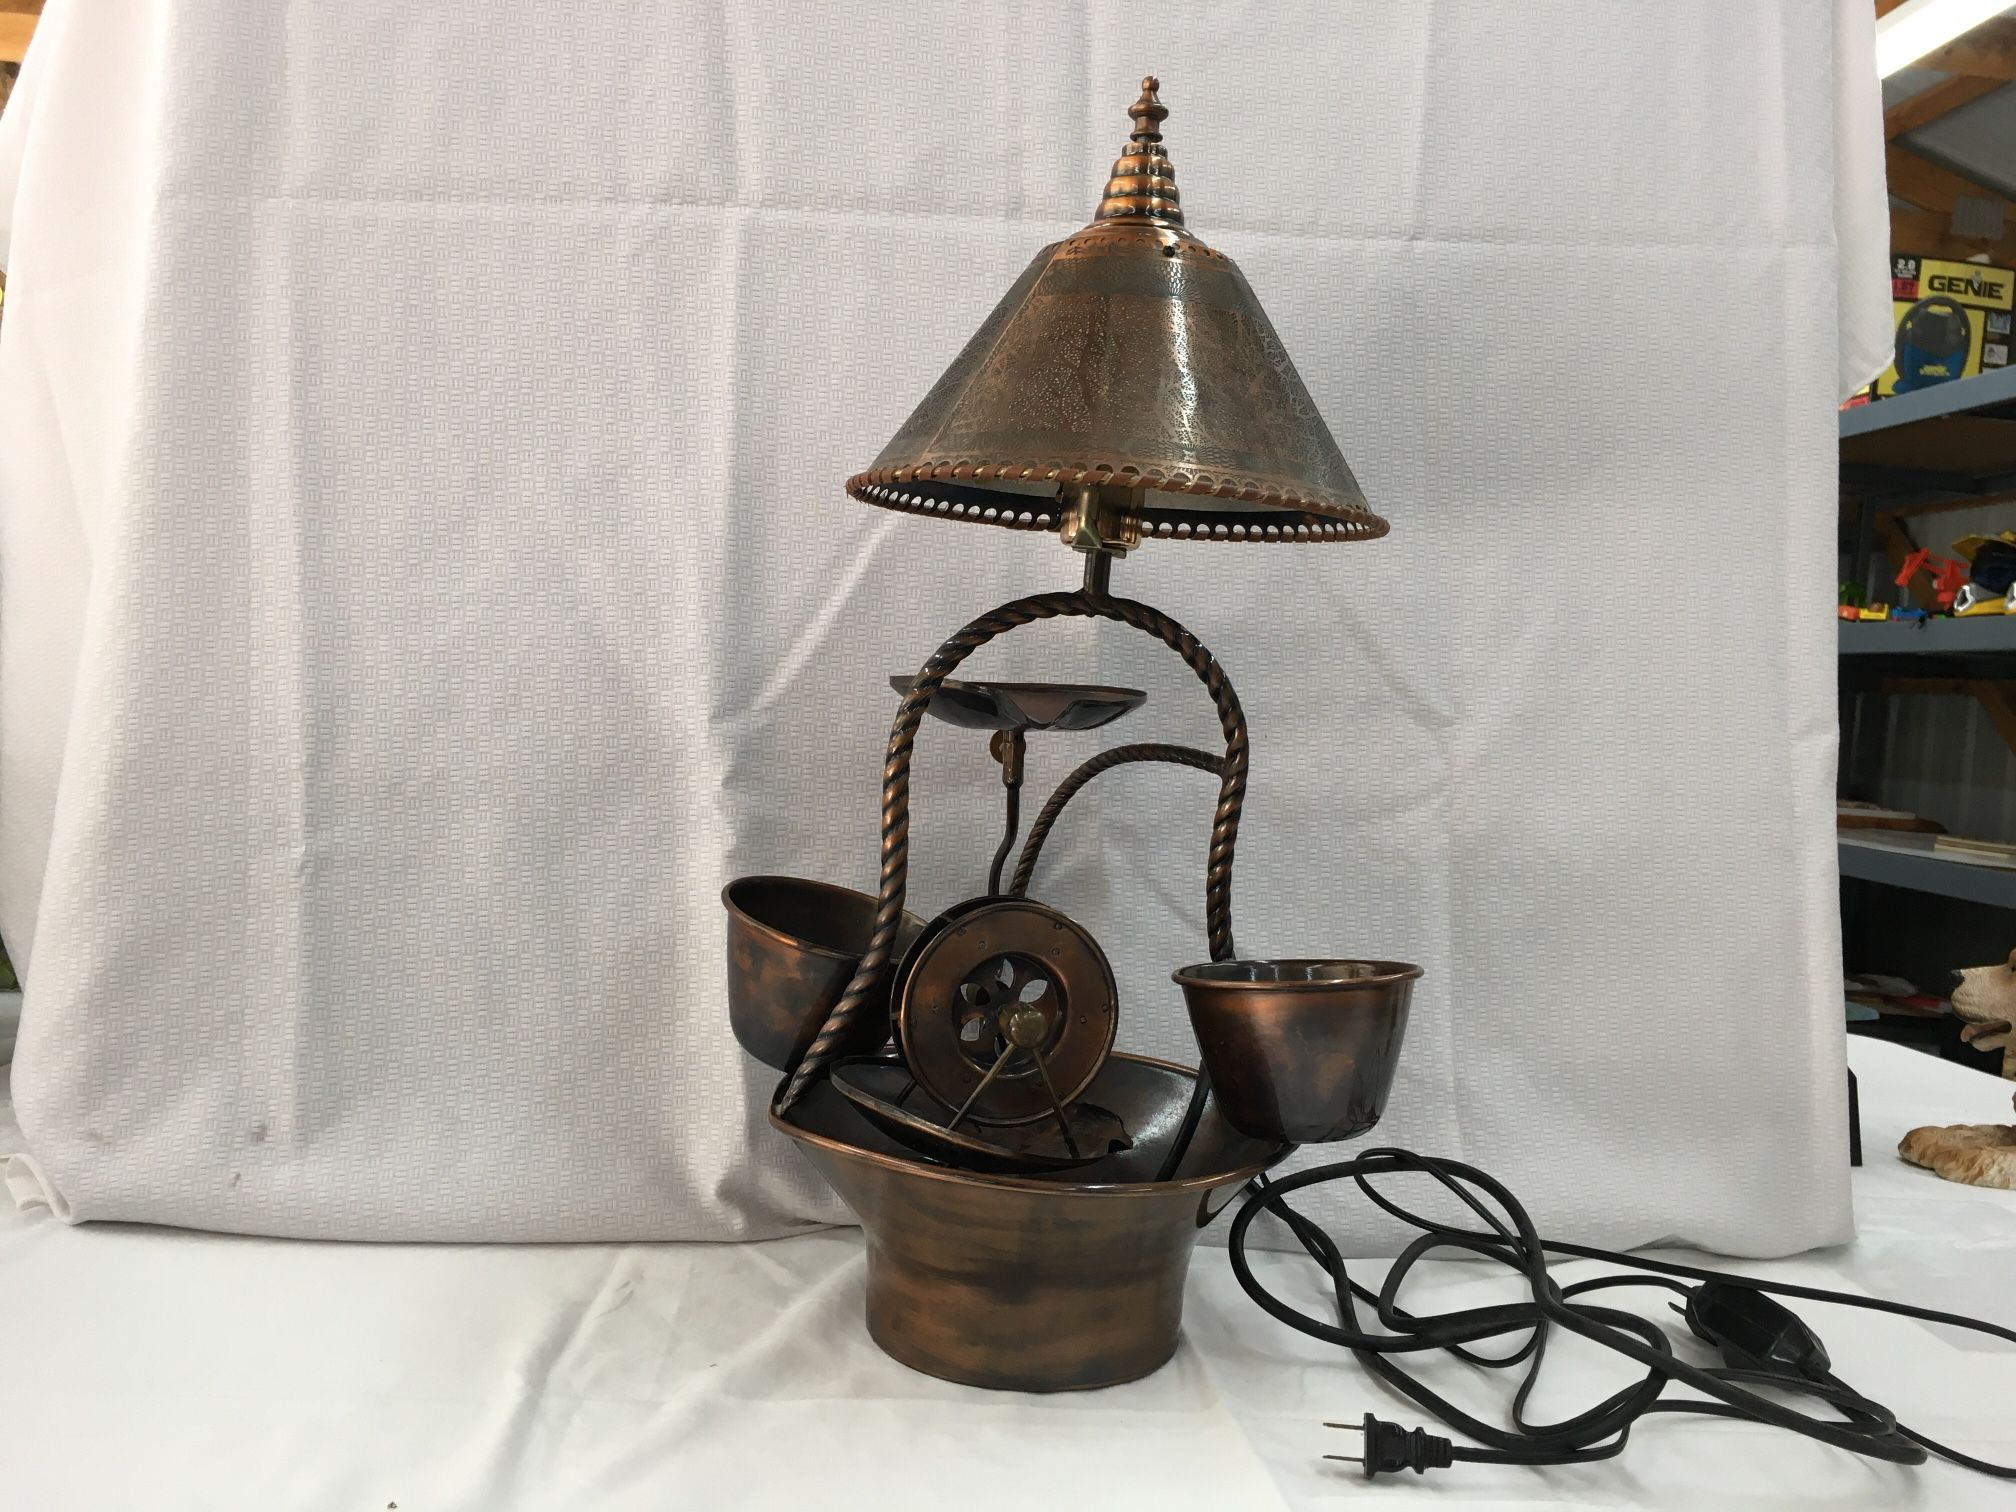 Antique Copper Lamp And Water Feature